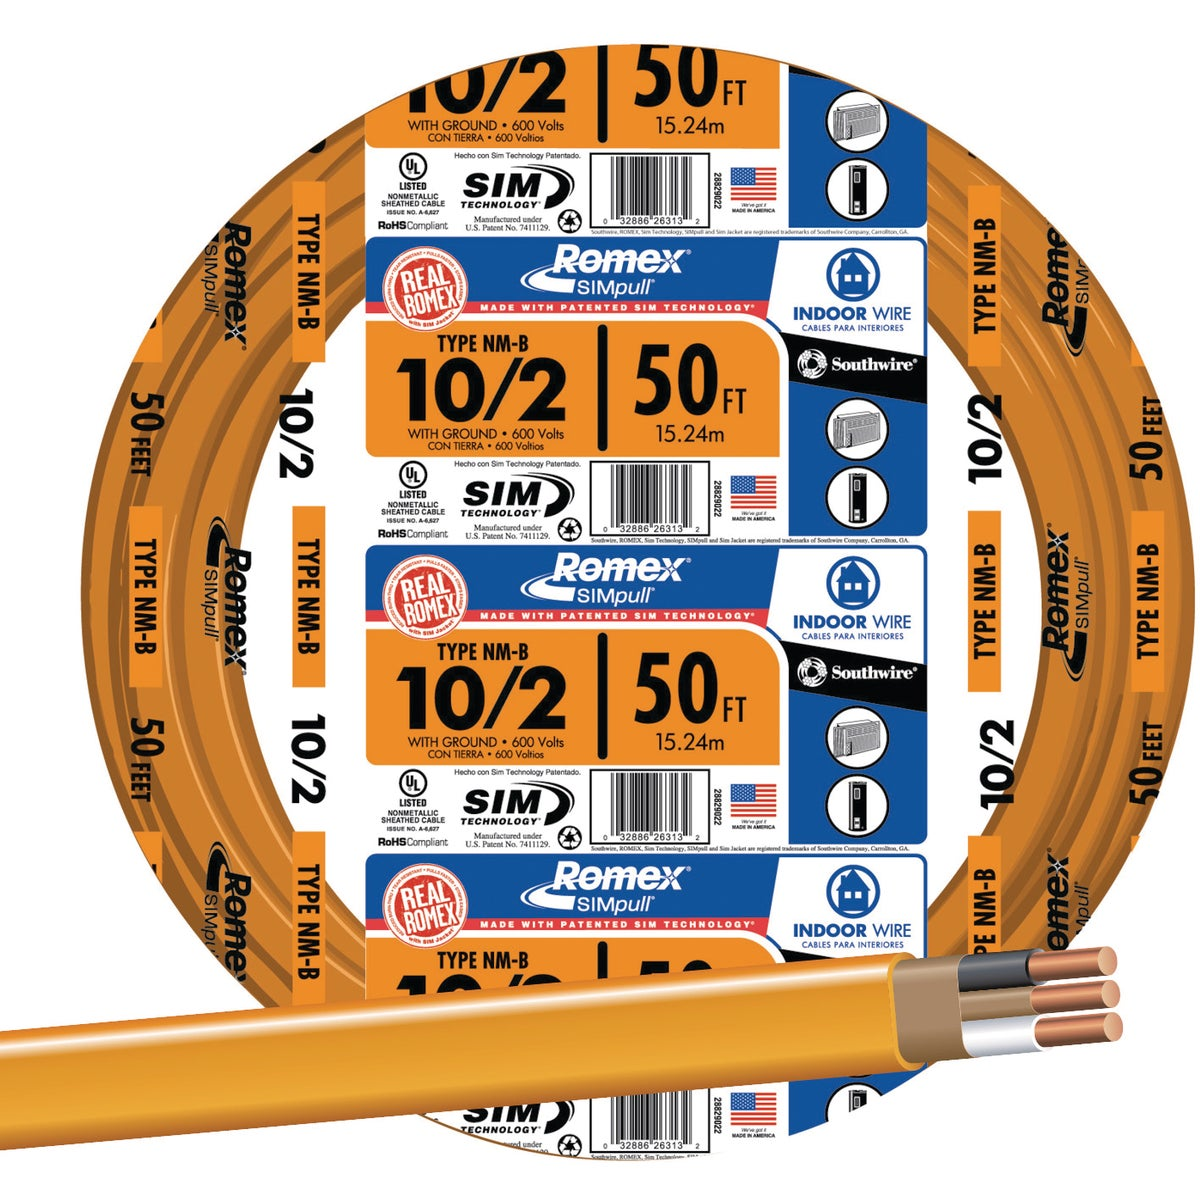 Southwire 50' 10-2 NMW/G WIRE 28829022